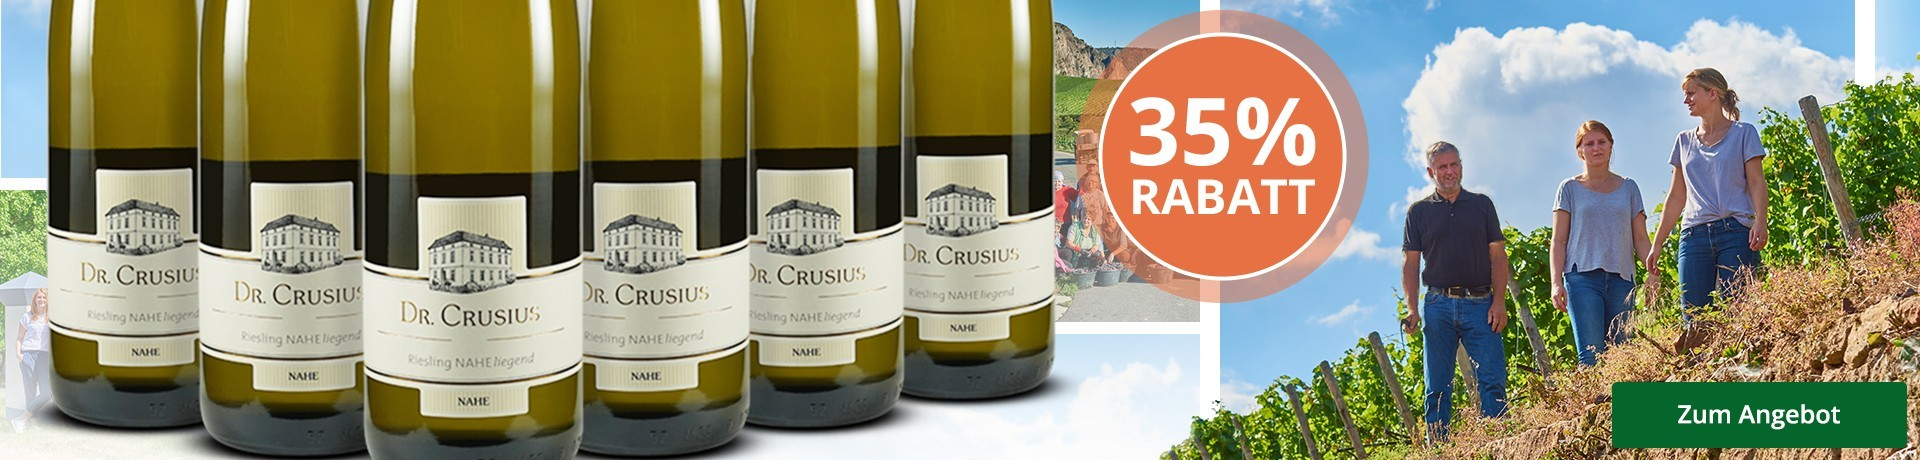 Dr. Crusius Riesling NAHEliegend